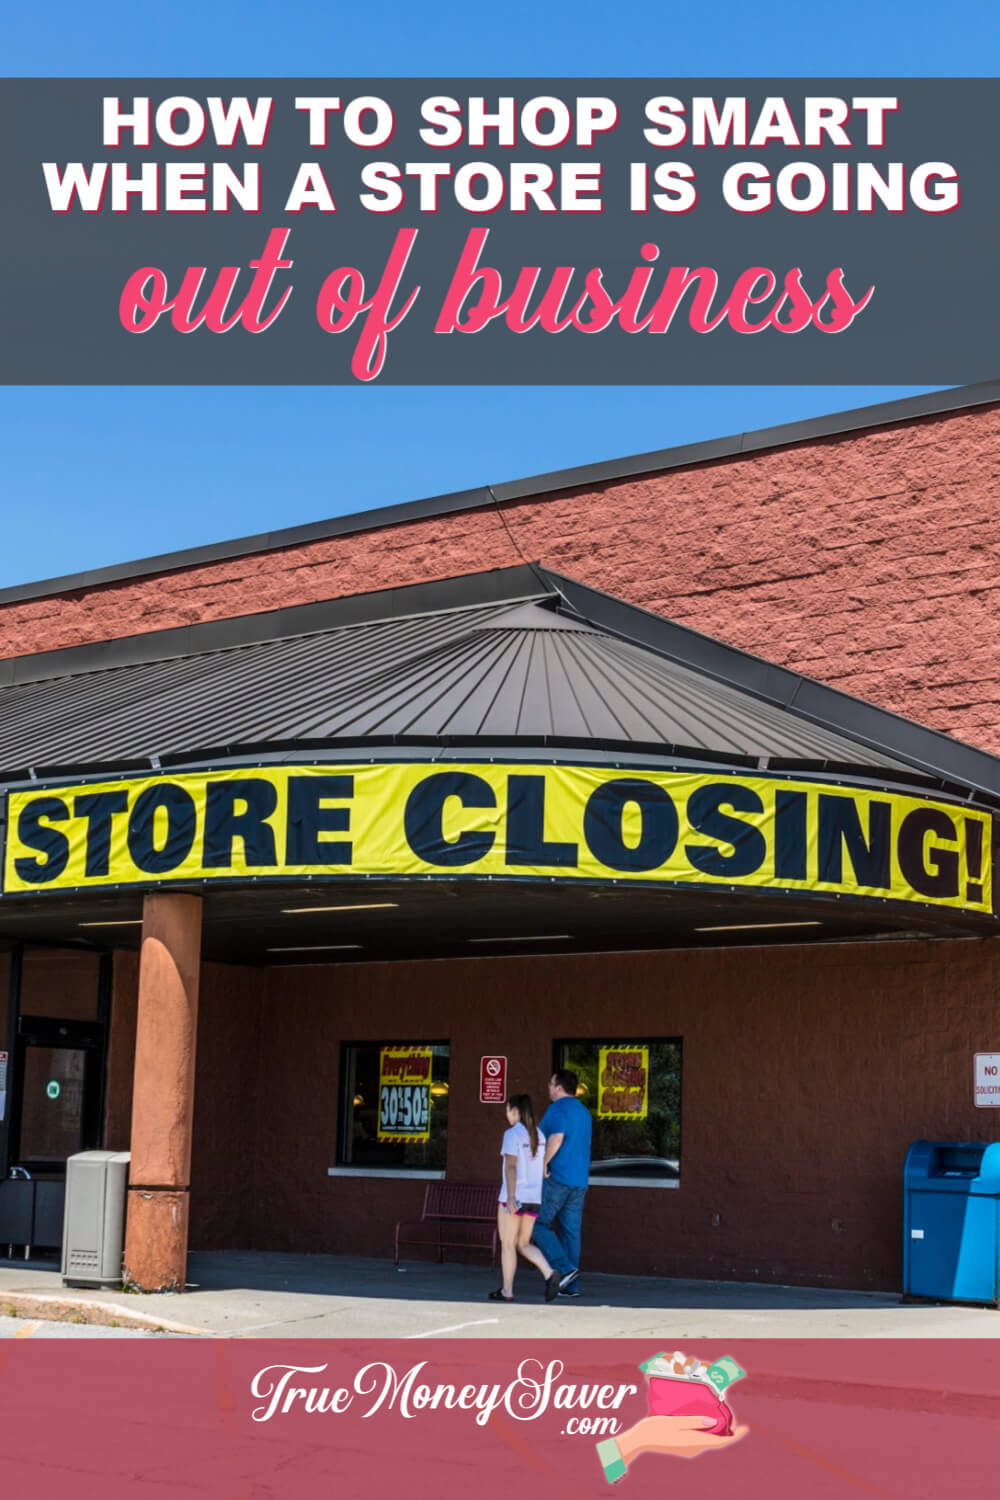 How To Cash In On The Crazy Deals When A Store Is Closing For Good